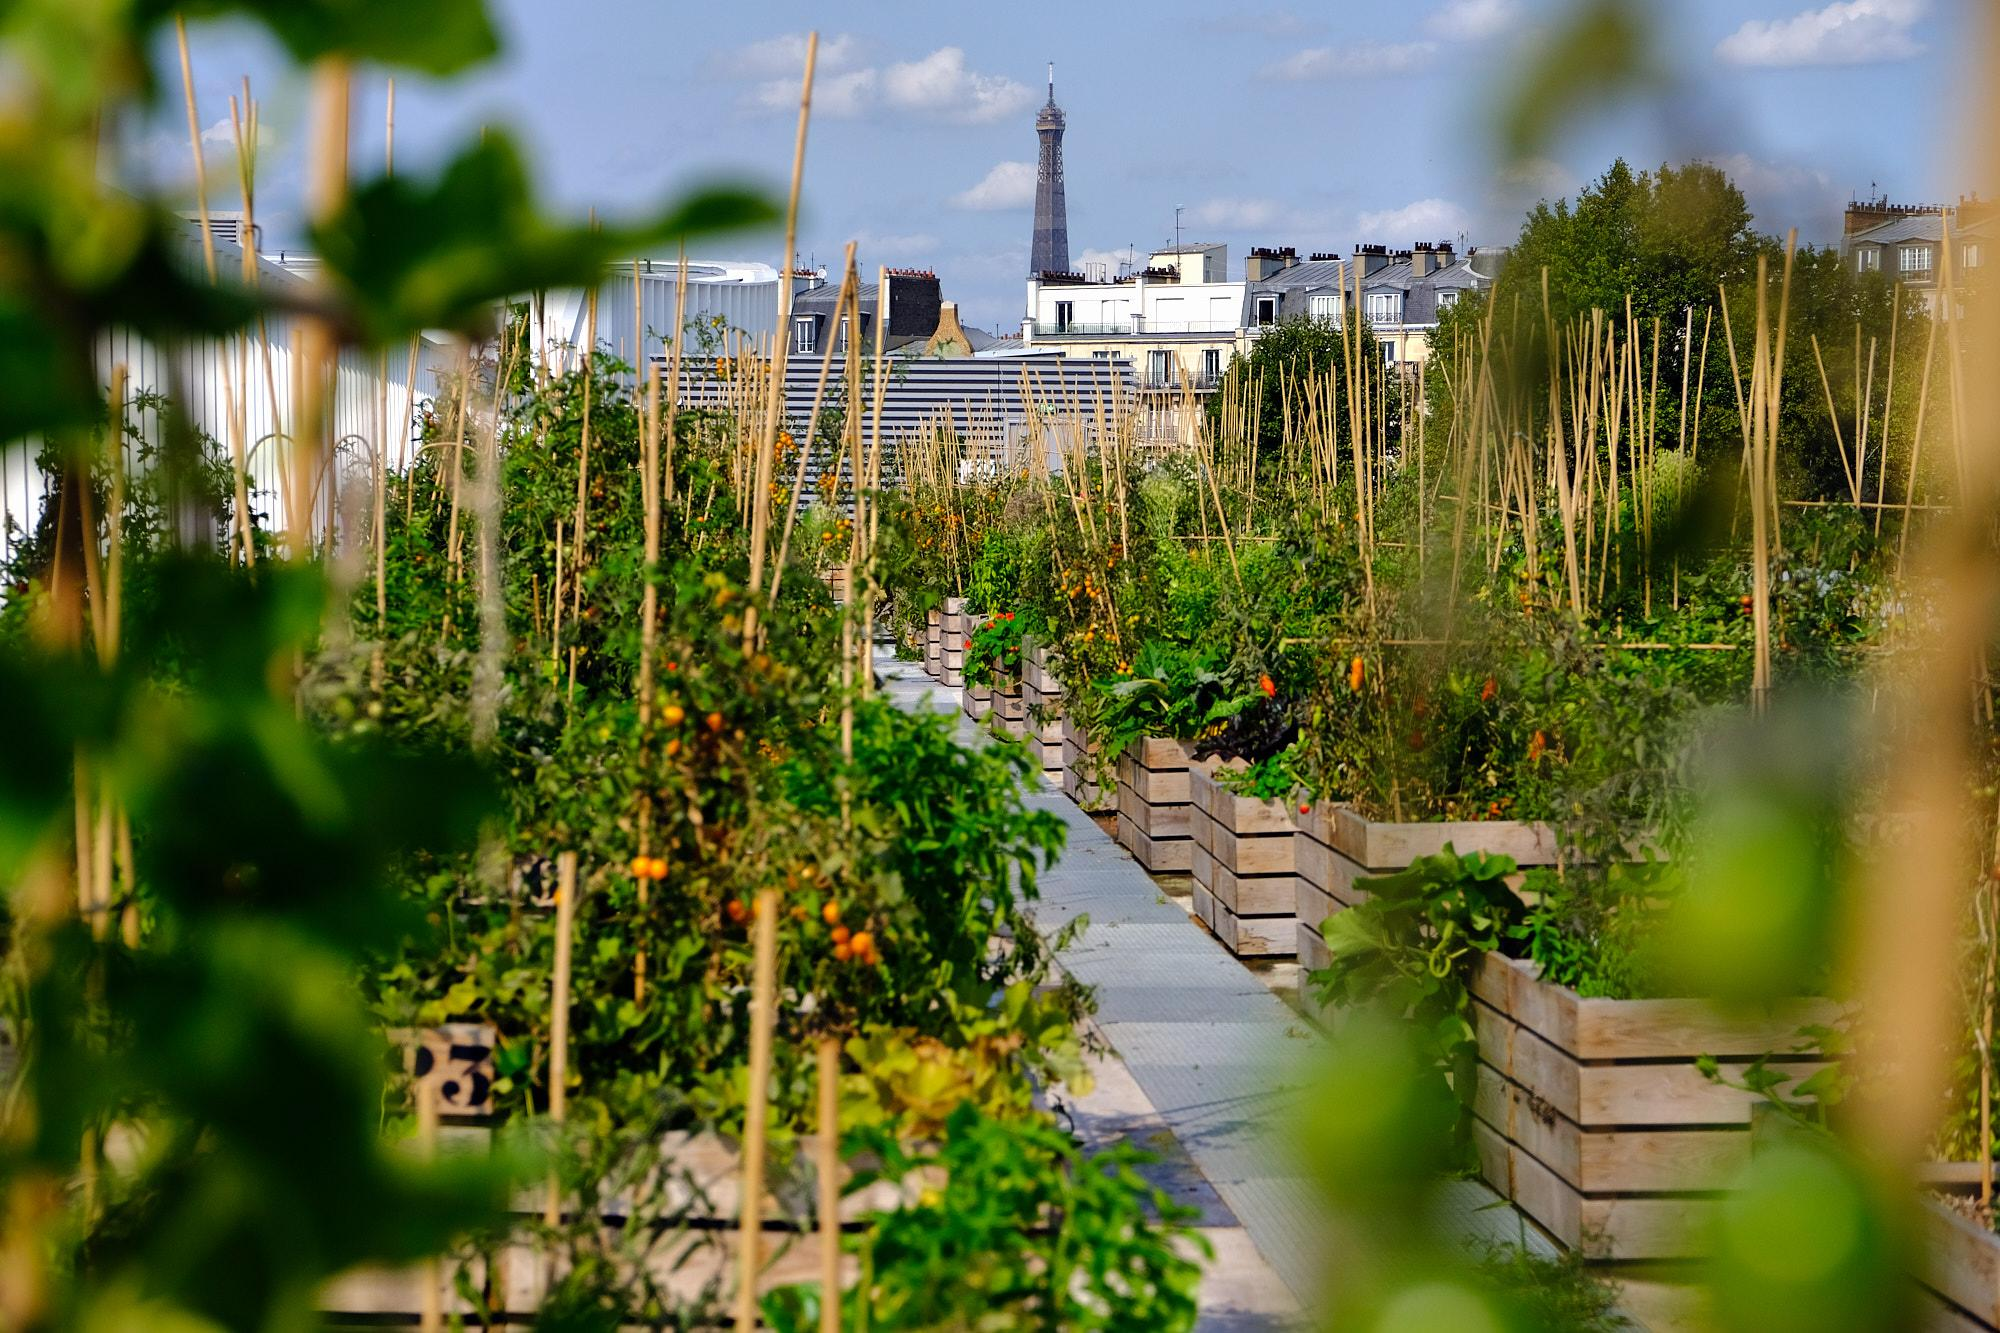 Individual plots are available for people who want to grow their own vegetables and fruits. Here plots are shown with a view of the Eiffel tower in the background,